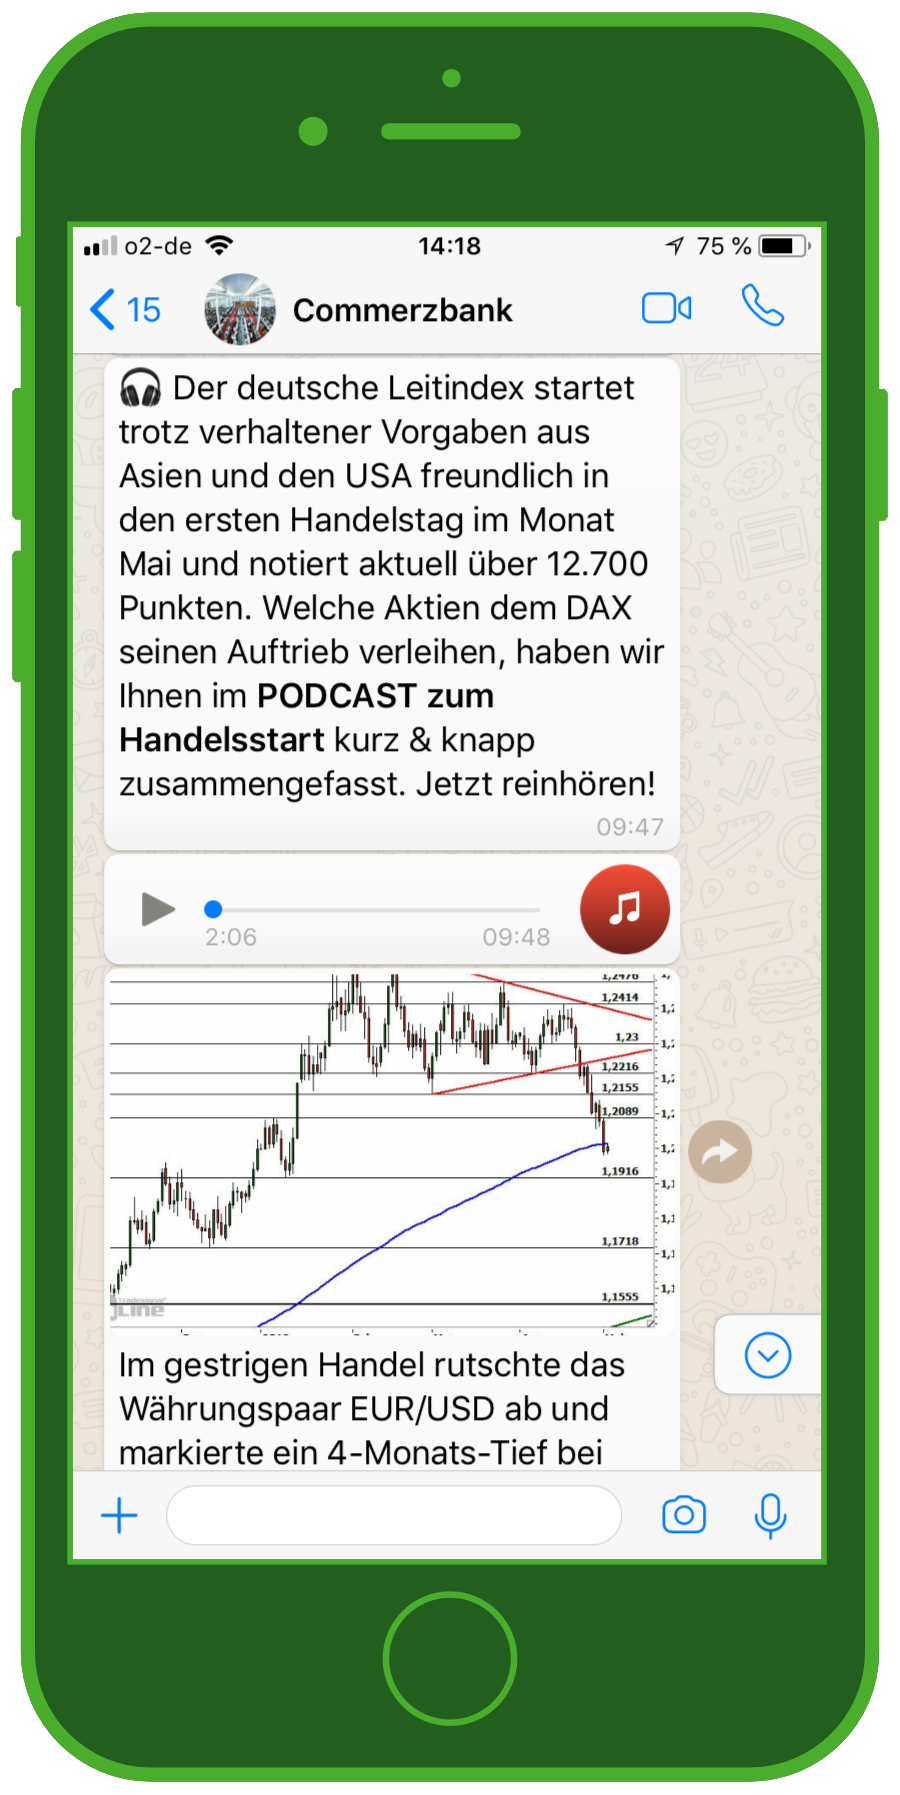 messenger-marketing-podcast-device-commerzbank